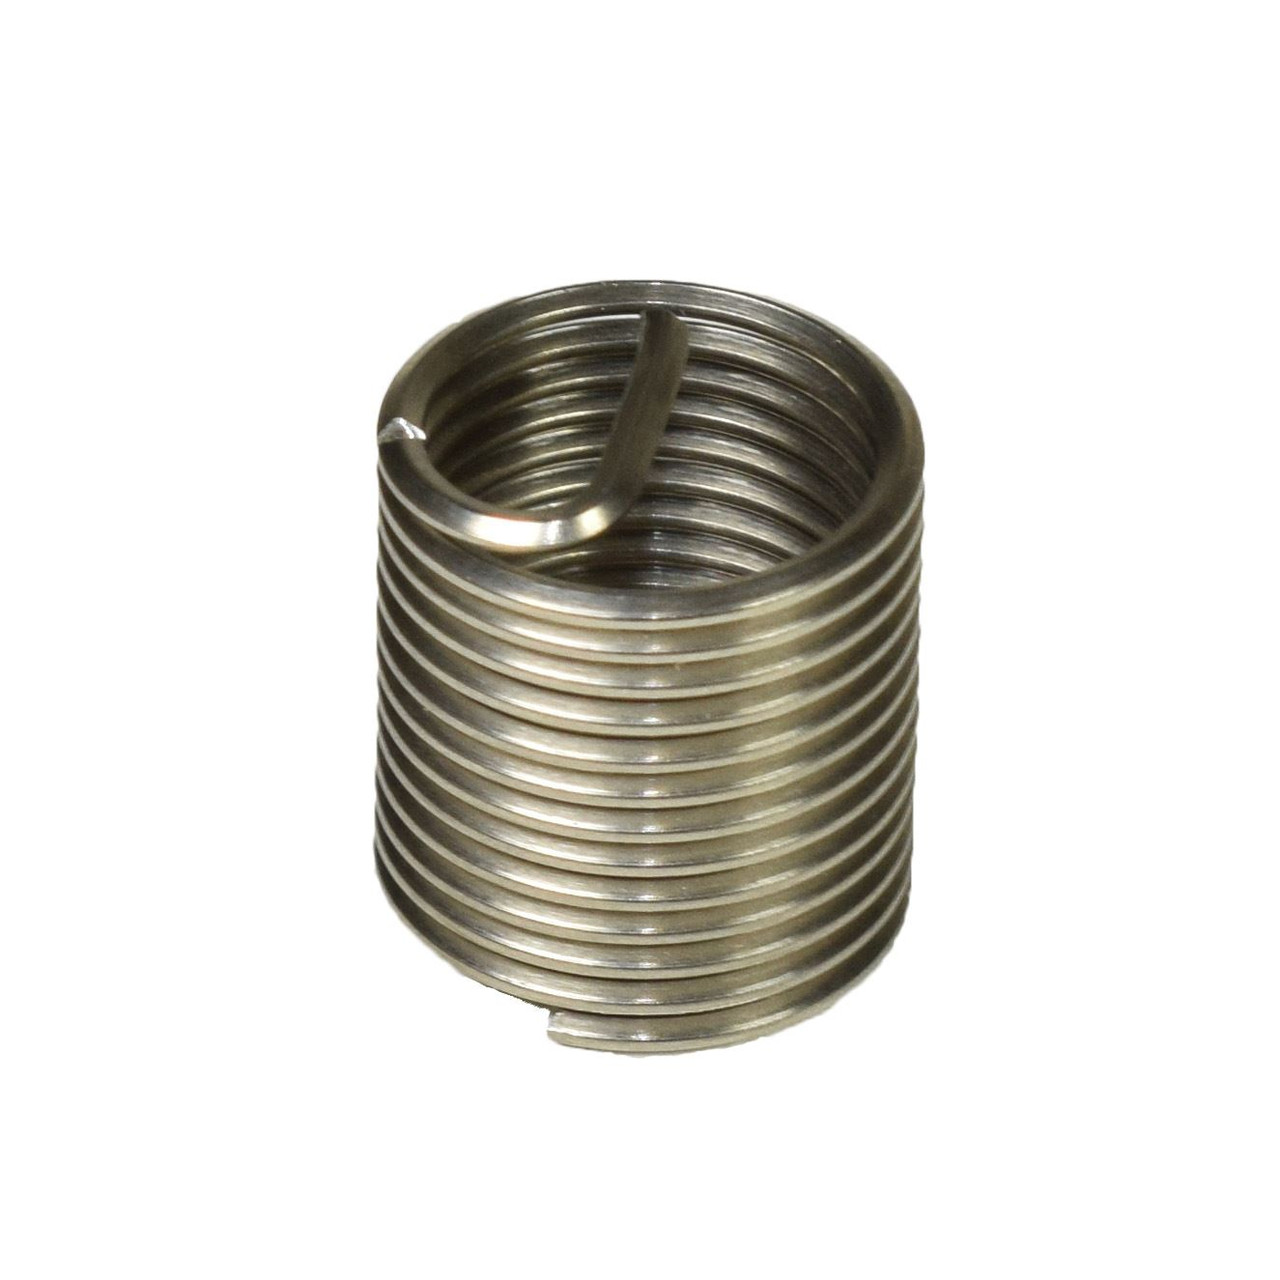 Helicoil Type Thread Repair Inserts 1/2 UNF x 1.5D 10pc Wire Thread Insert